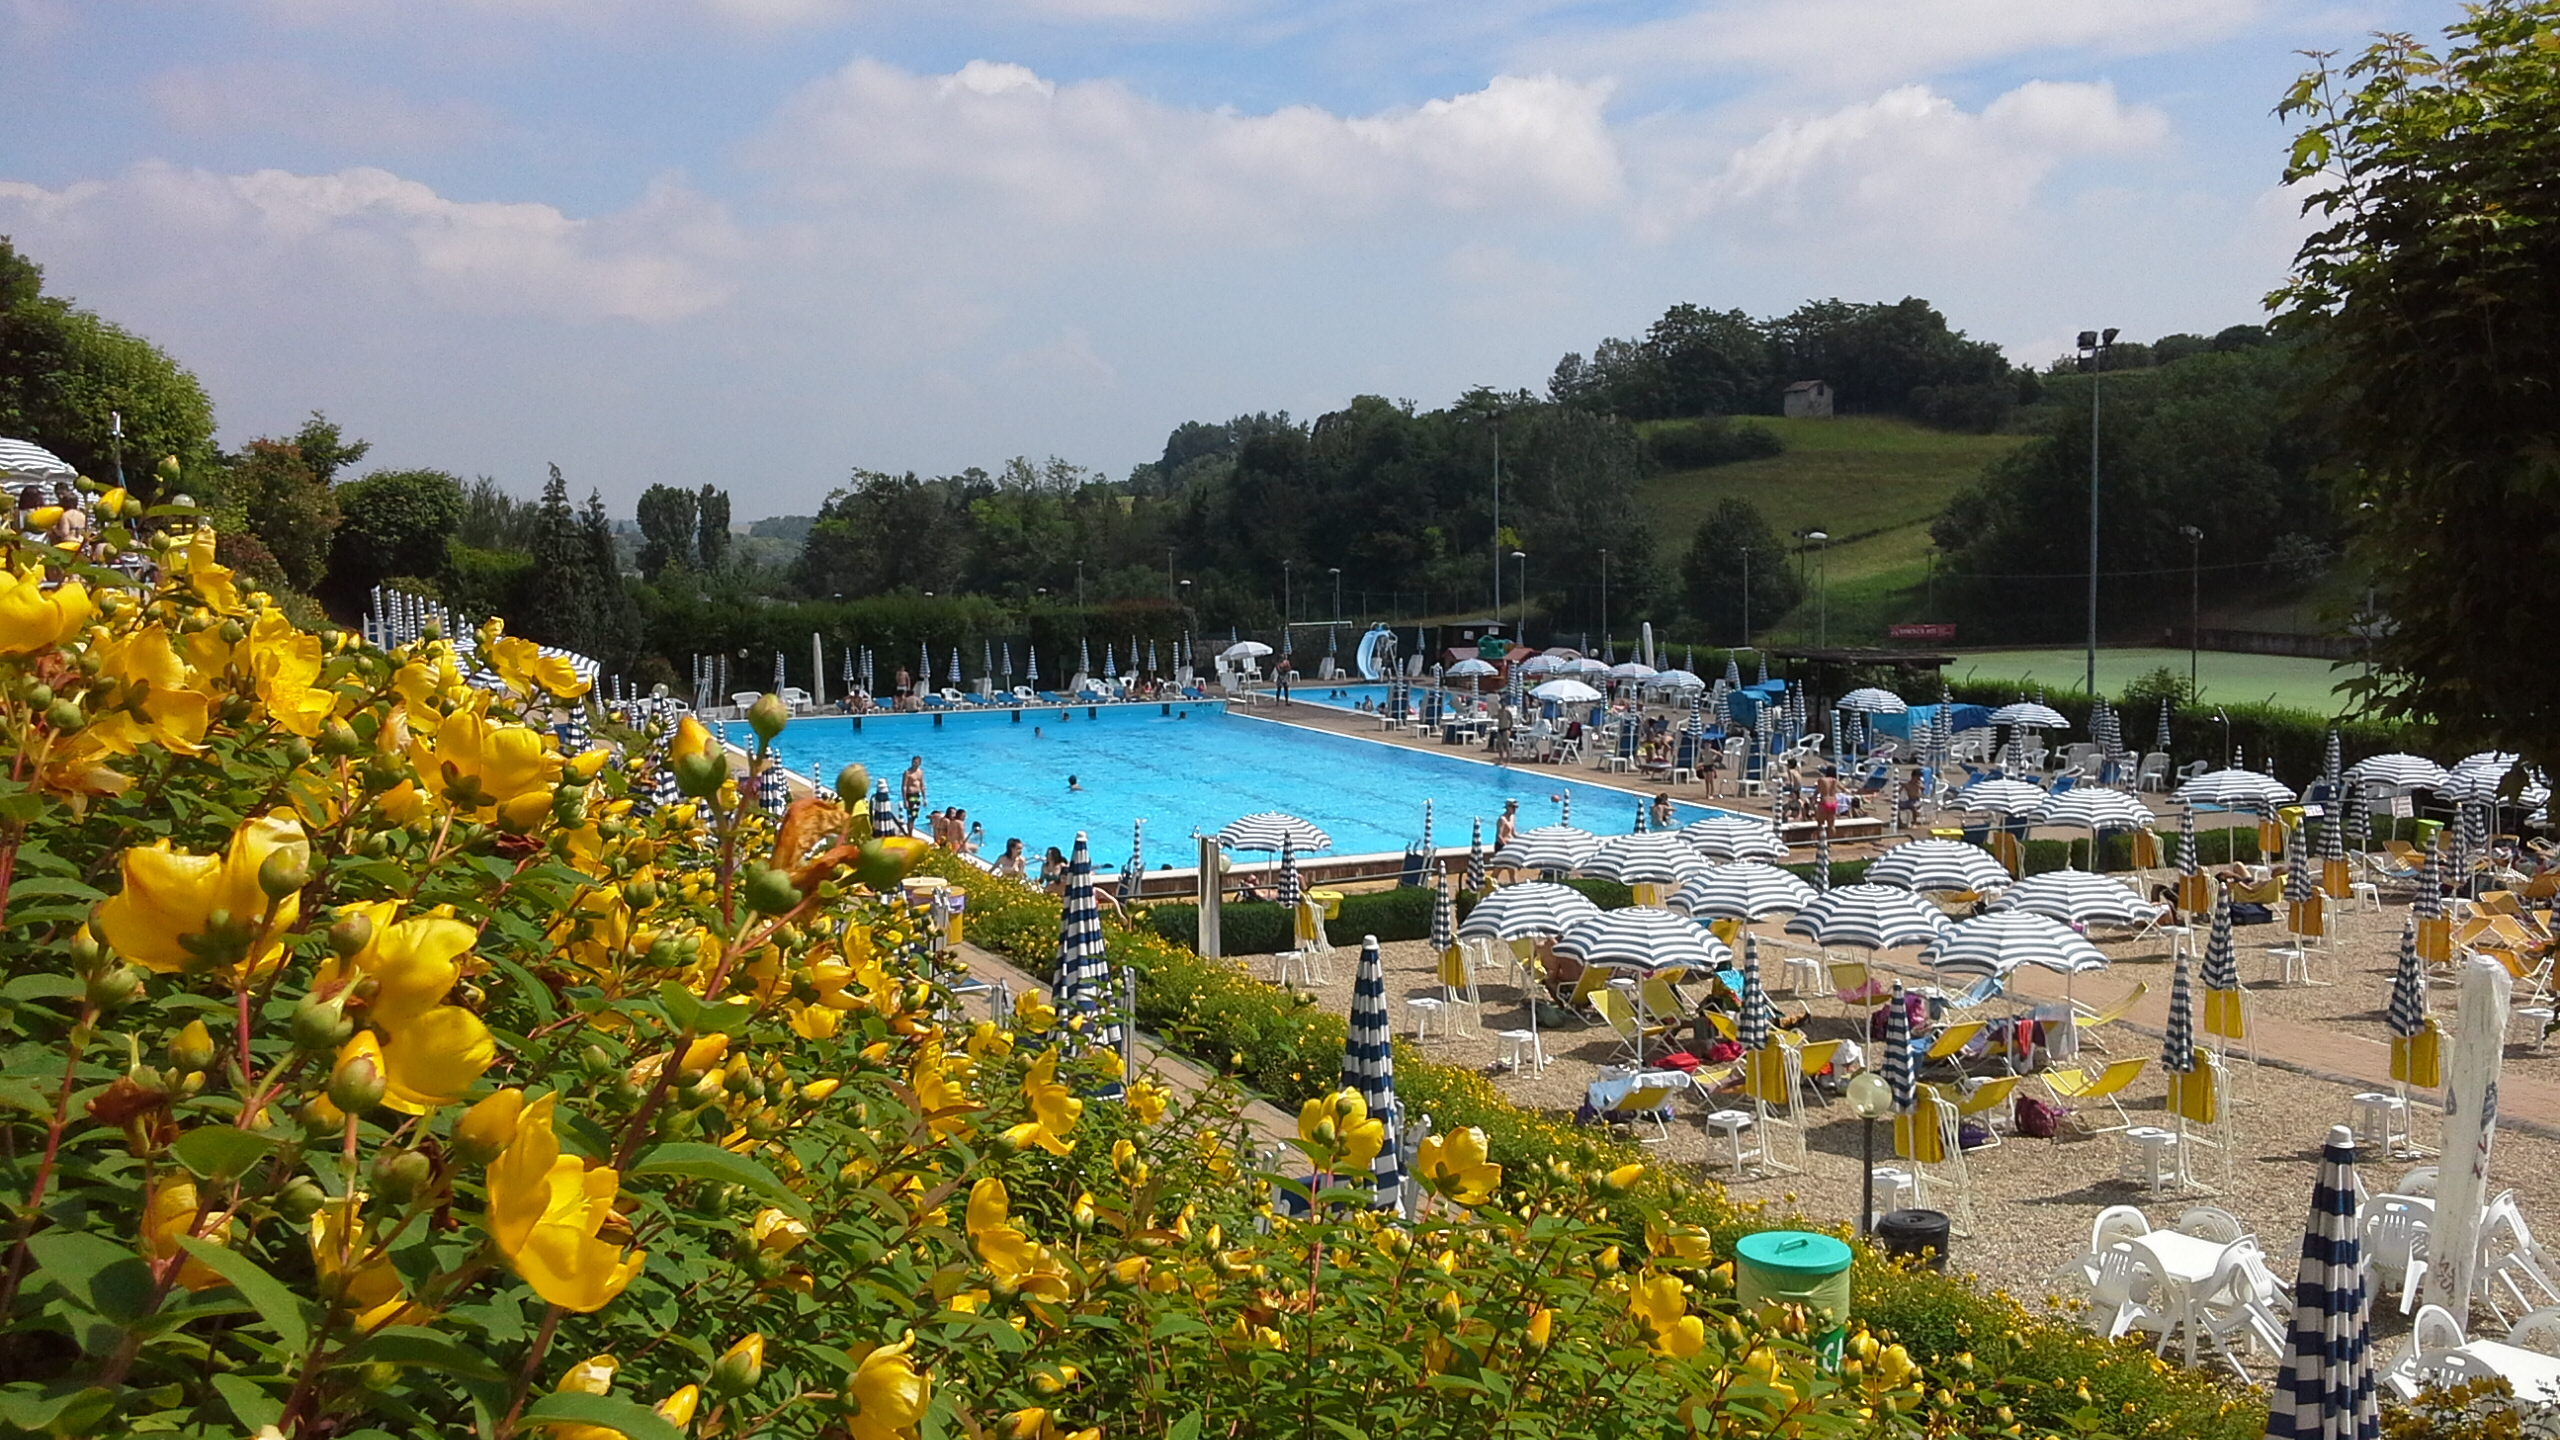 Aquatic Center Le Vallette